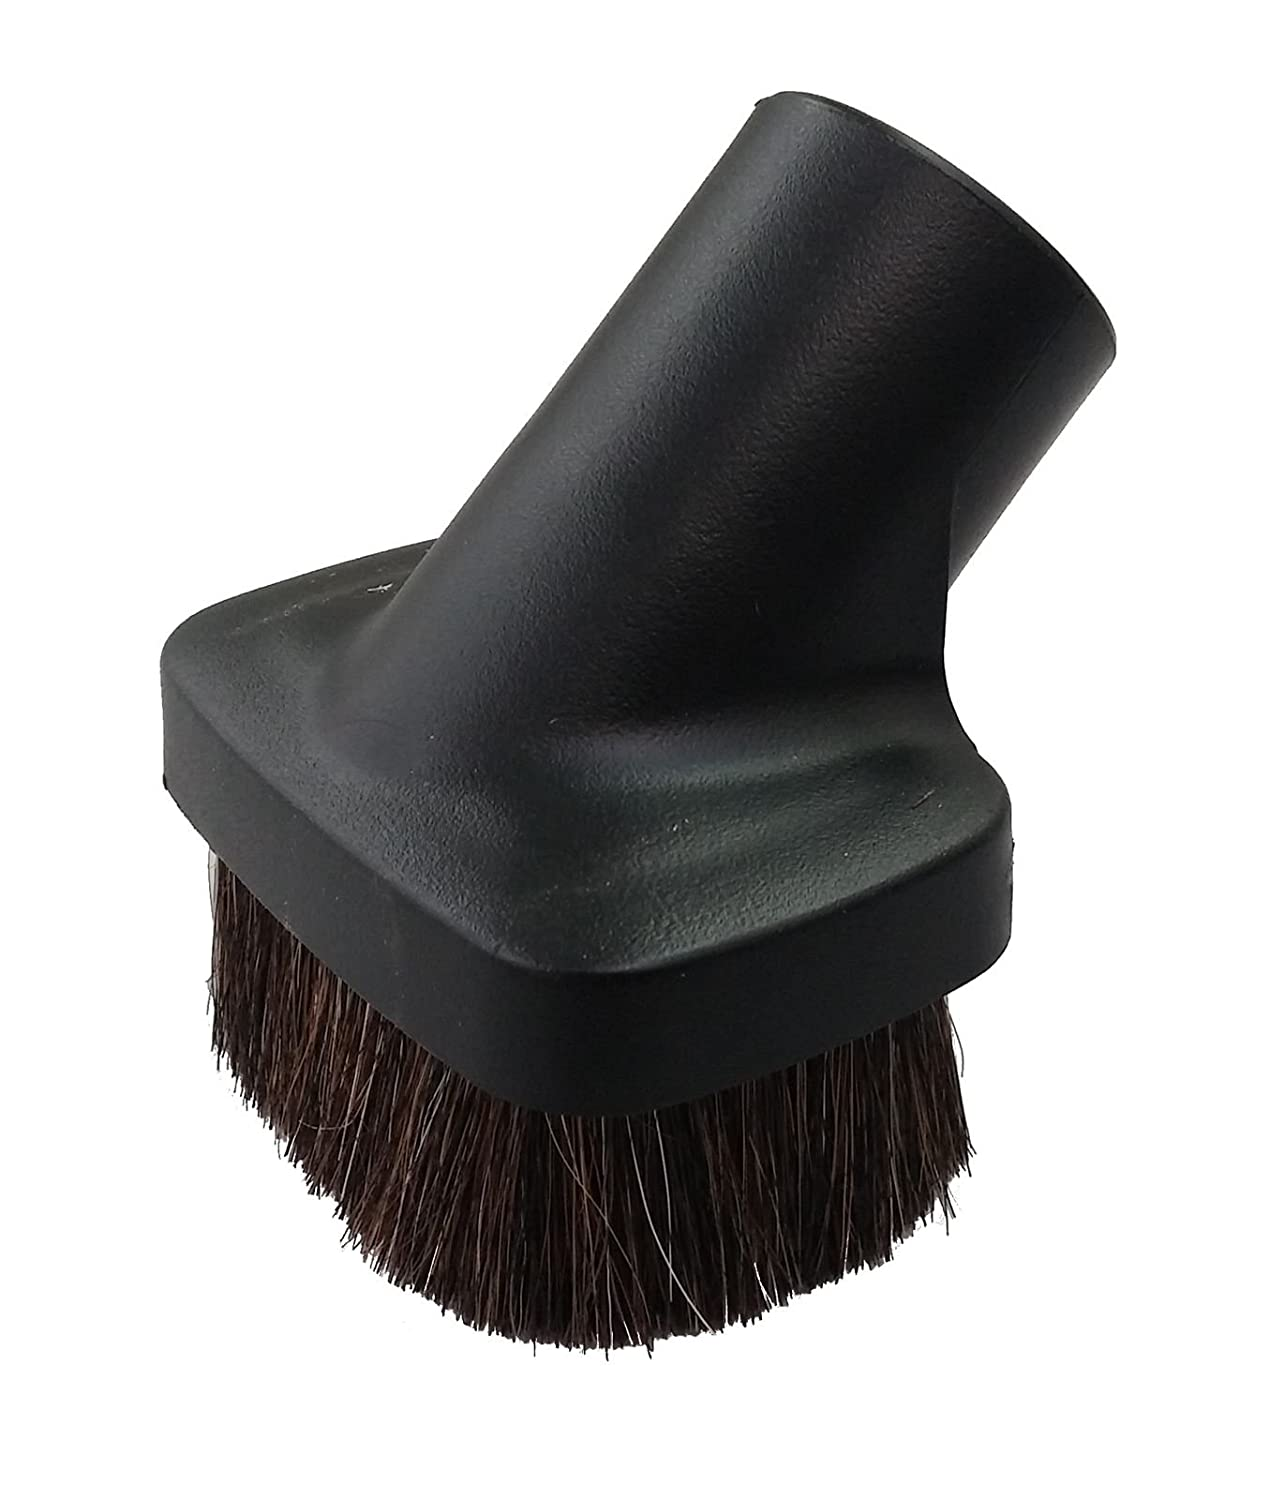 BIN Eureka Mighty Mite Horse Hair Dusting Brush 53359 GENUINE